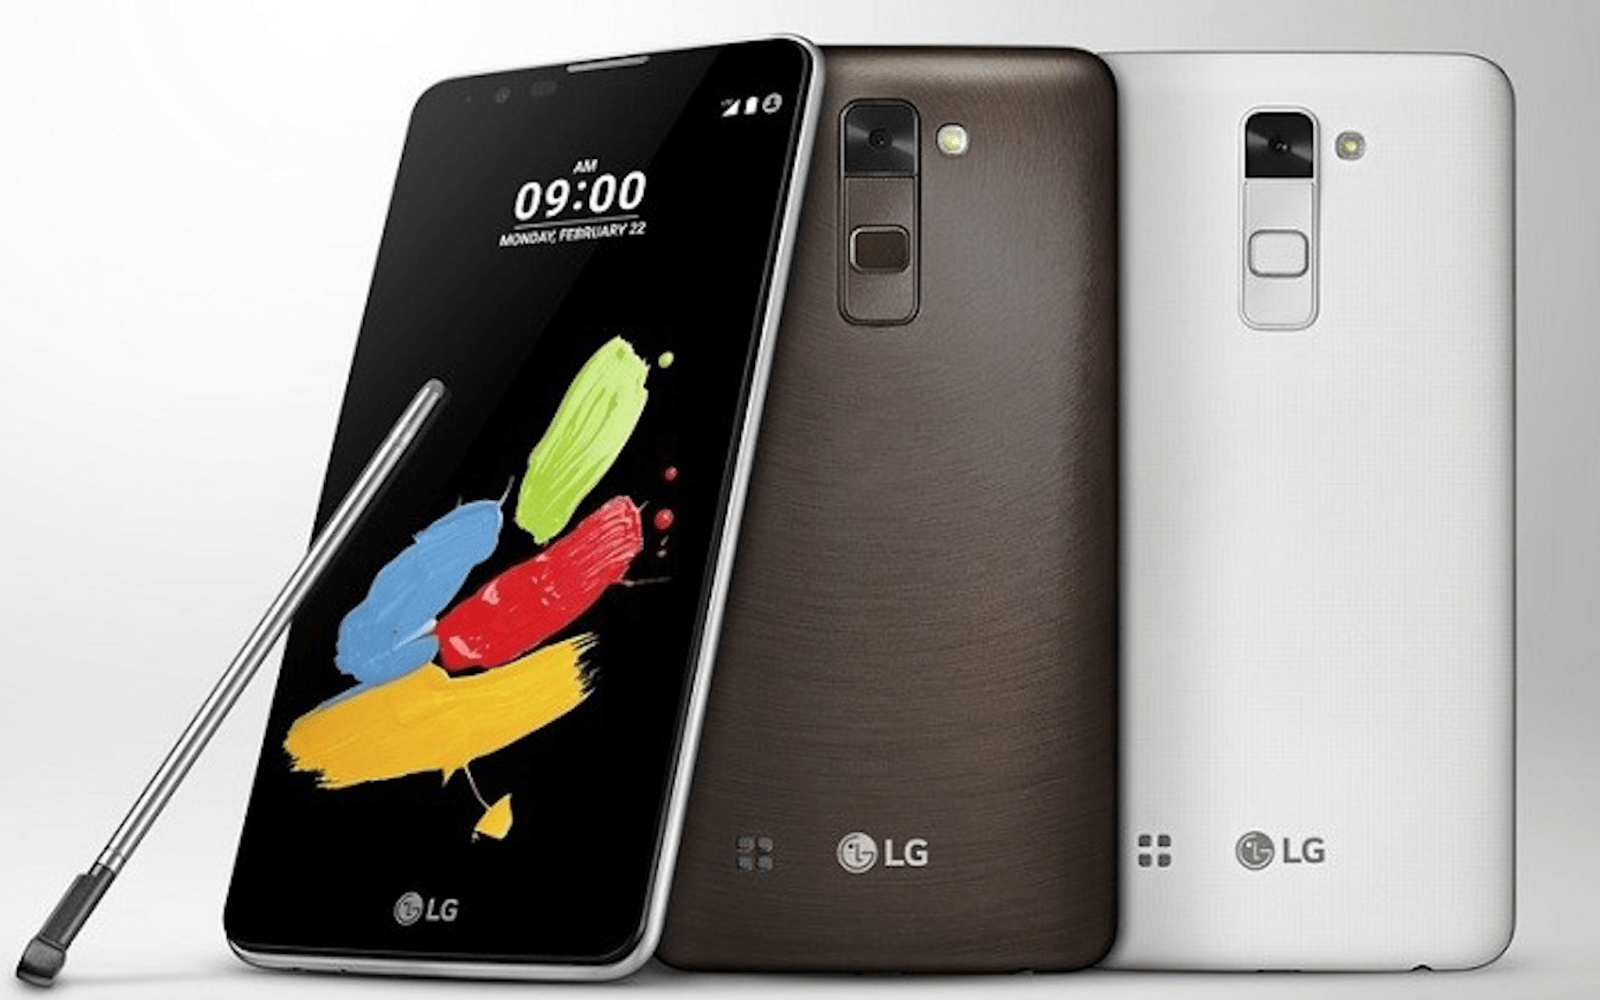 LG officially unveils the Stylus 2 Plus with performance & camera improvements